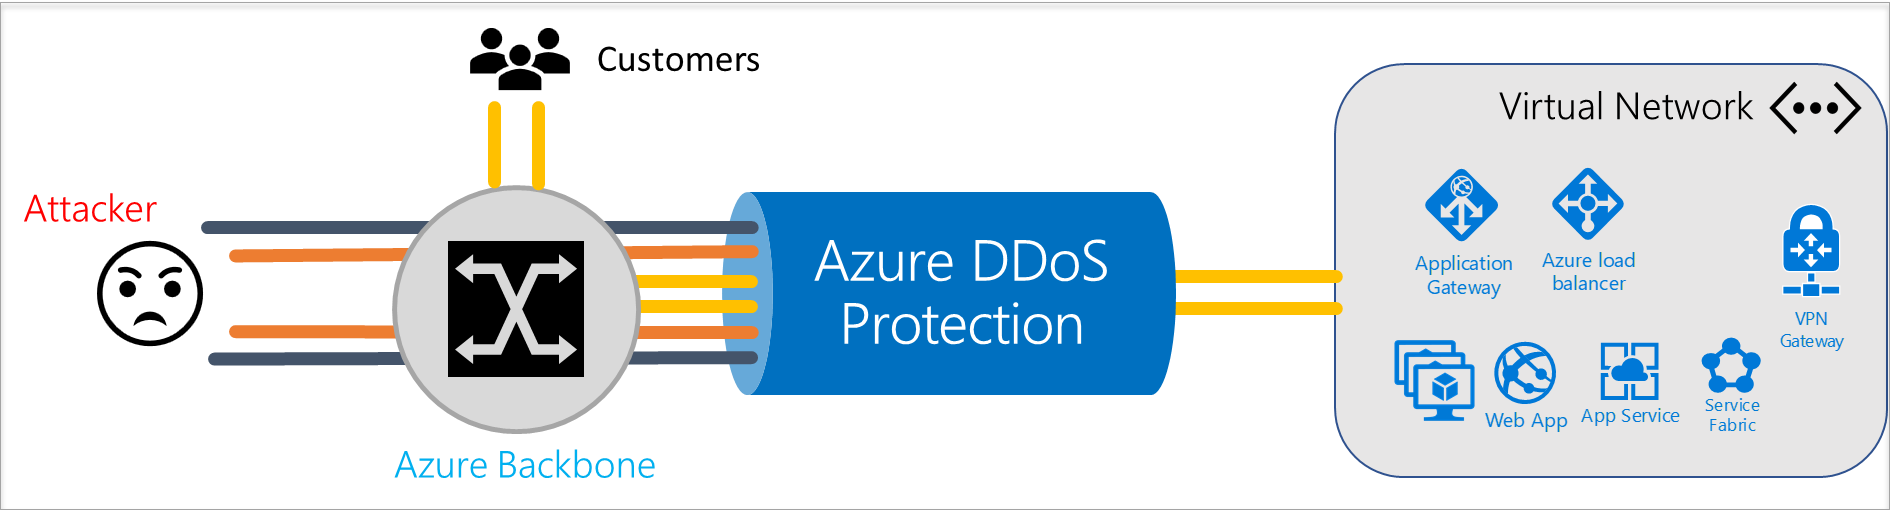 Azure DDoS Protection best practices and reference architectures